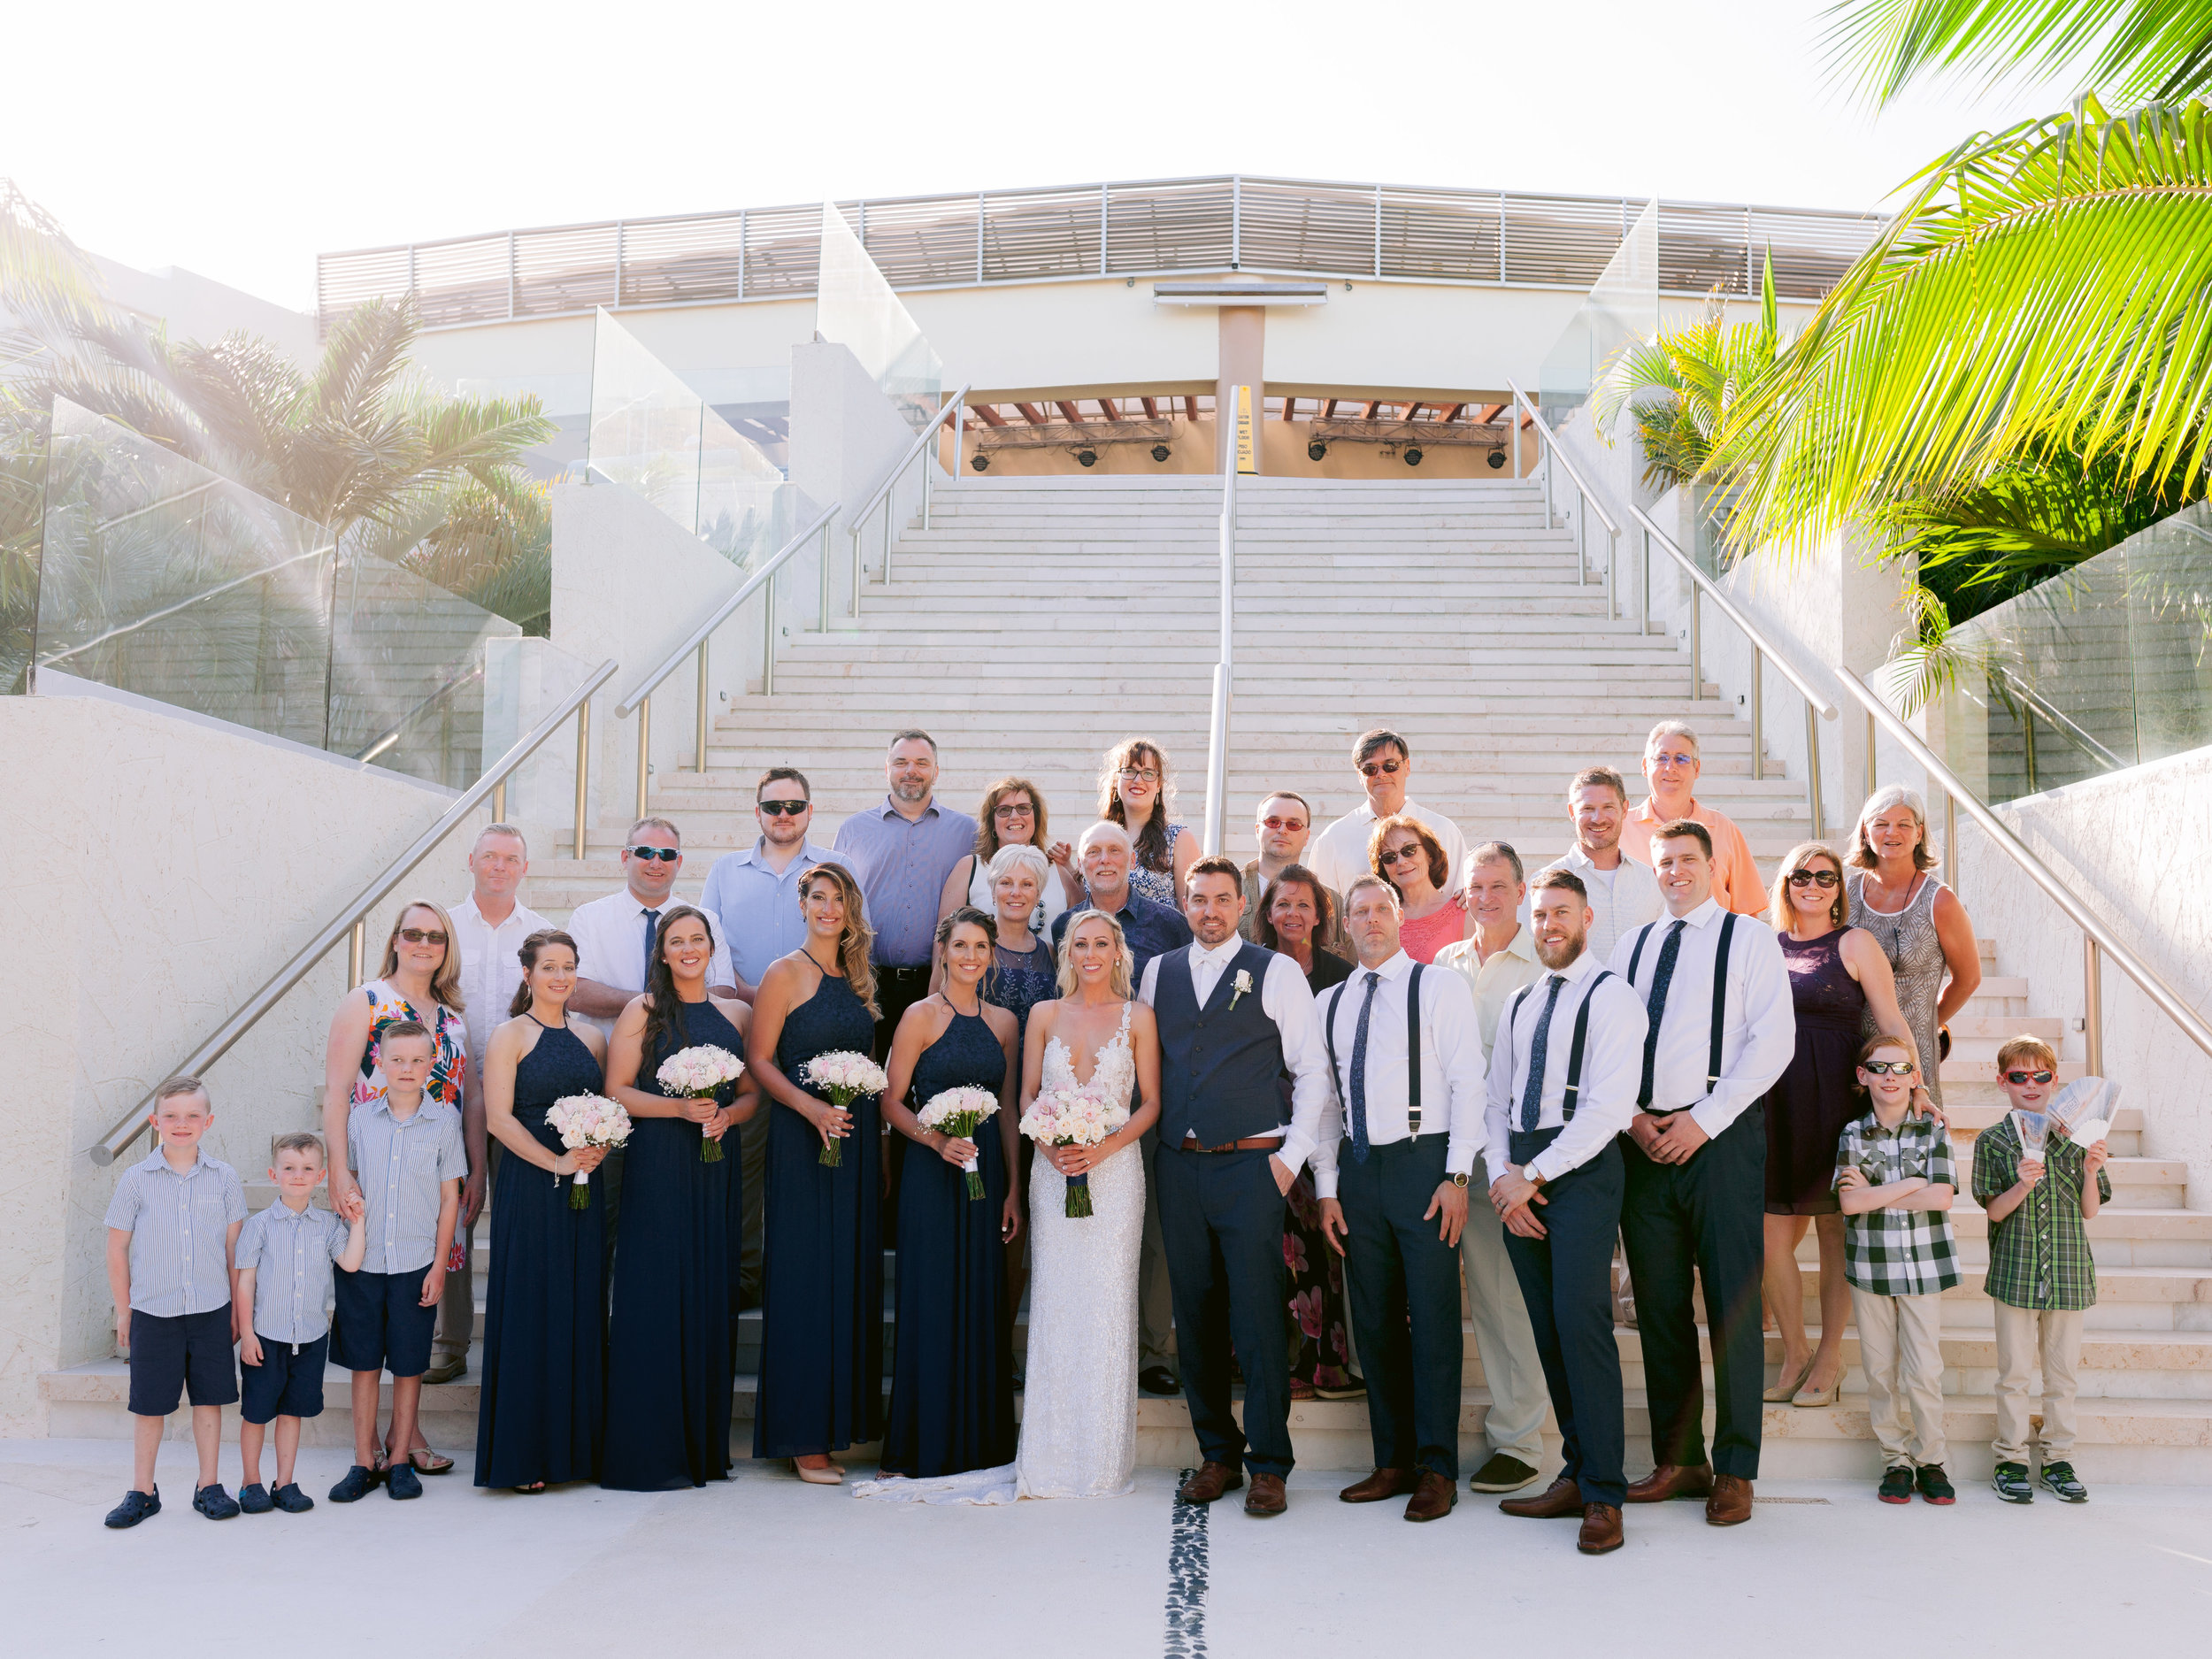 Kim_Jeff_Cancun Wedding_Portraits_Kurtz_Orpia (3 of 178).jpg